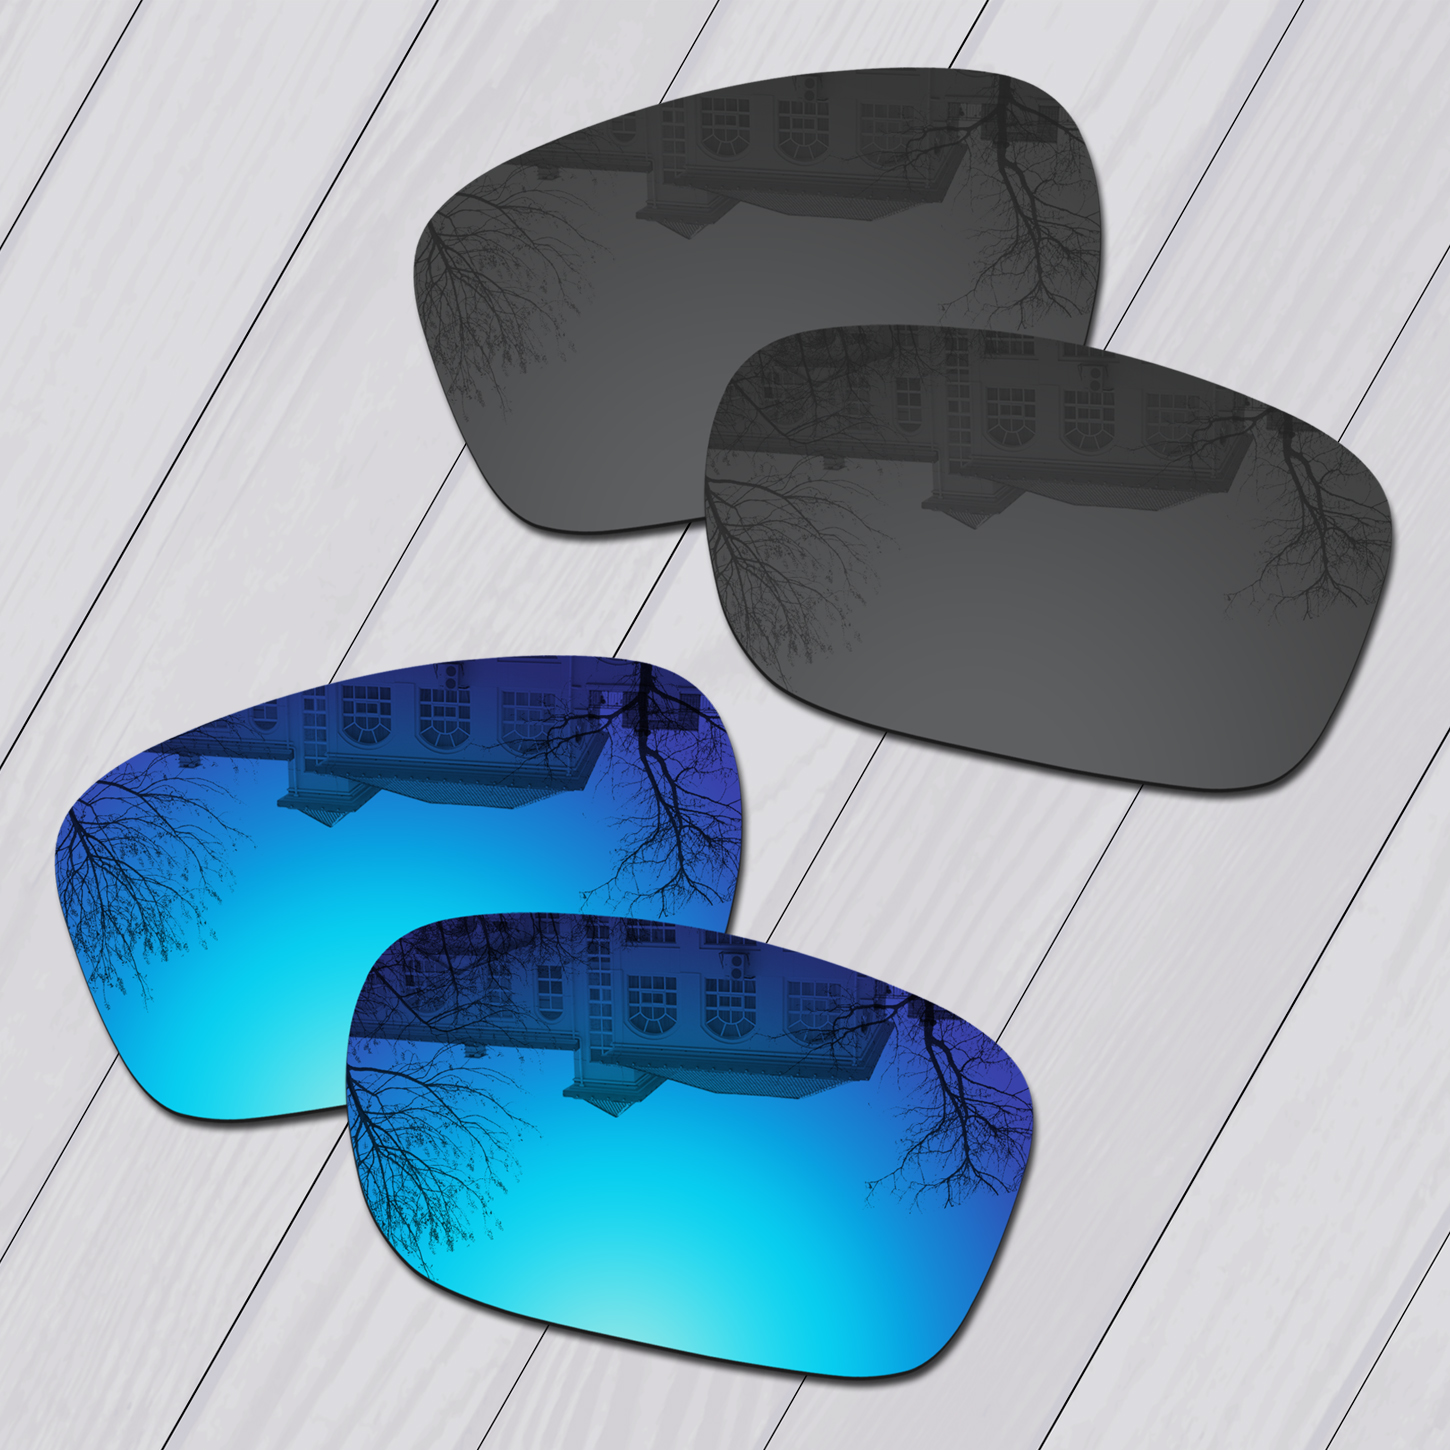 E.O.S 2 Pairs Black & Ice Blue Polarized Replacement Lenses for Oakley Scalpel OO9095 Sunglasses